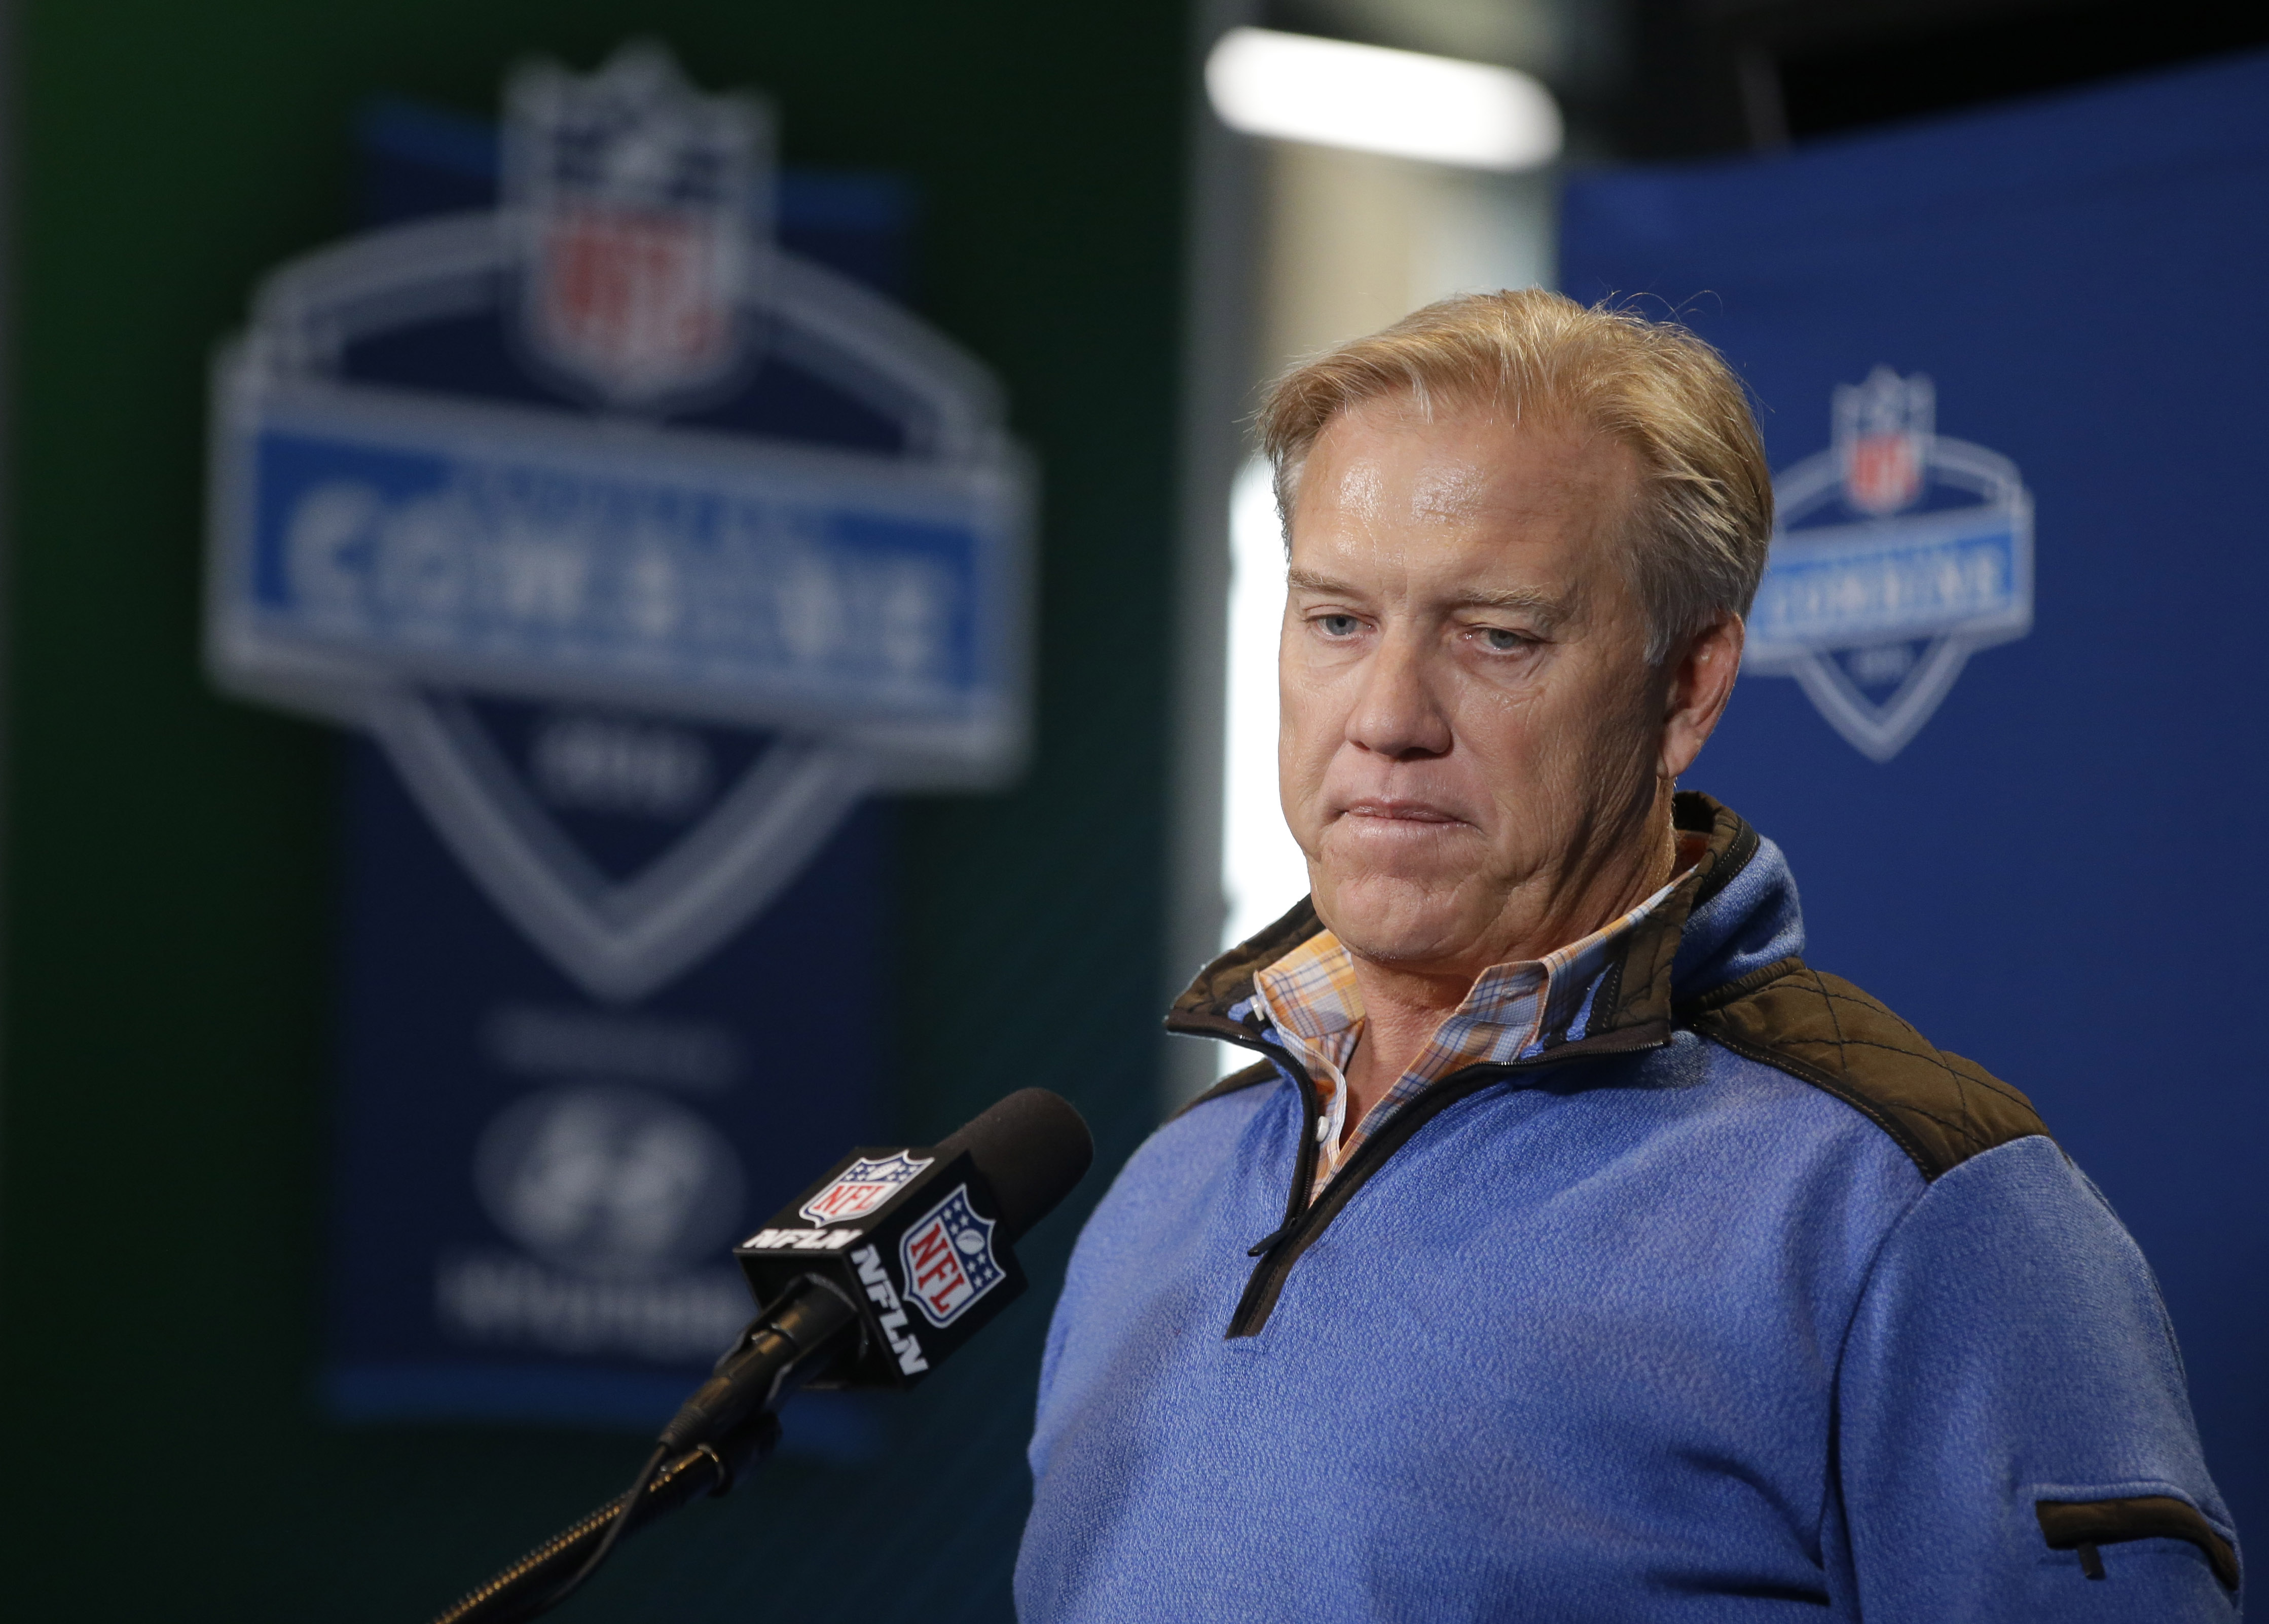 Denver Broncos general manager John Elway listens to a question during a news conference at the NFL football scouting combine Thursday, Feb. 25, 2016, in Indianapolis. (AP Photo/Darron Cummings)